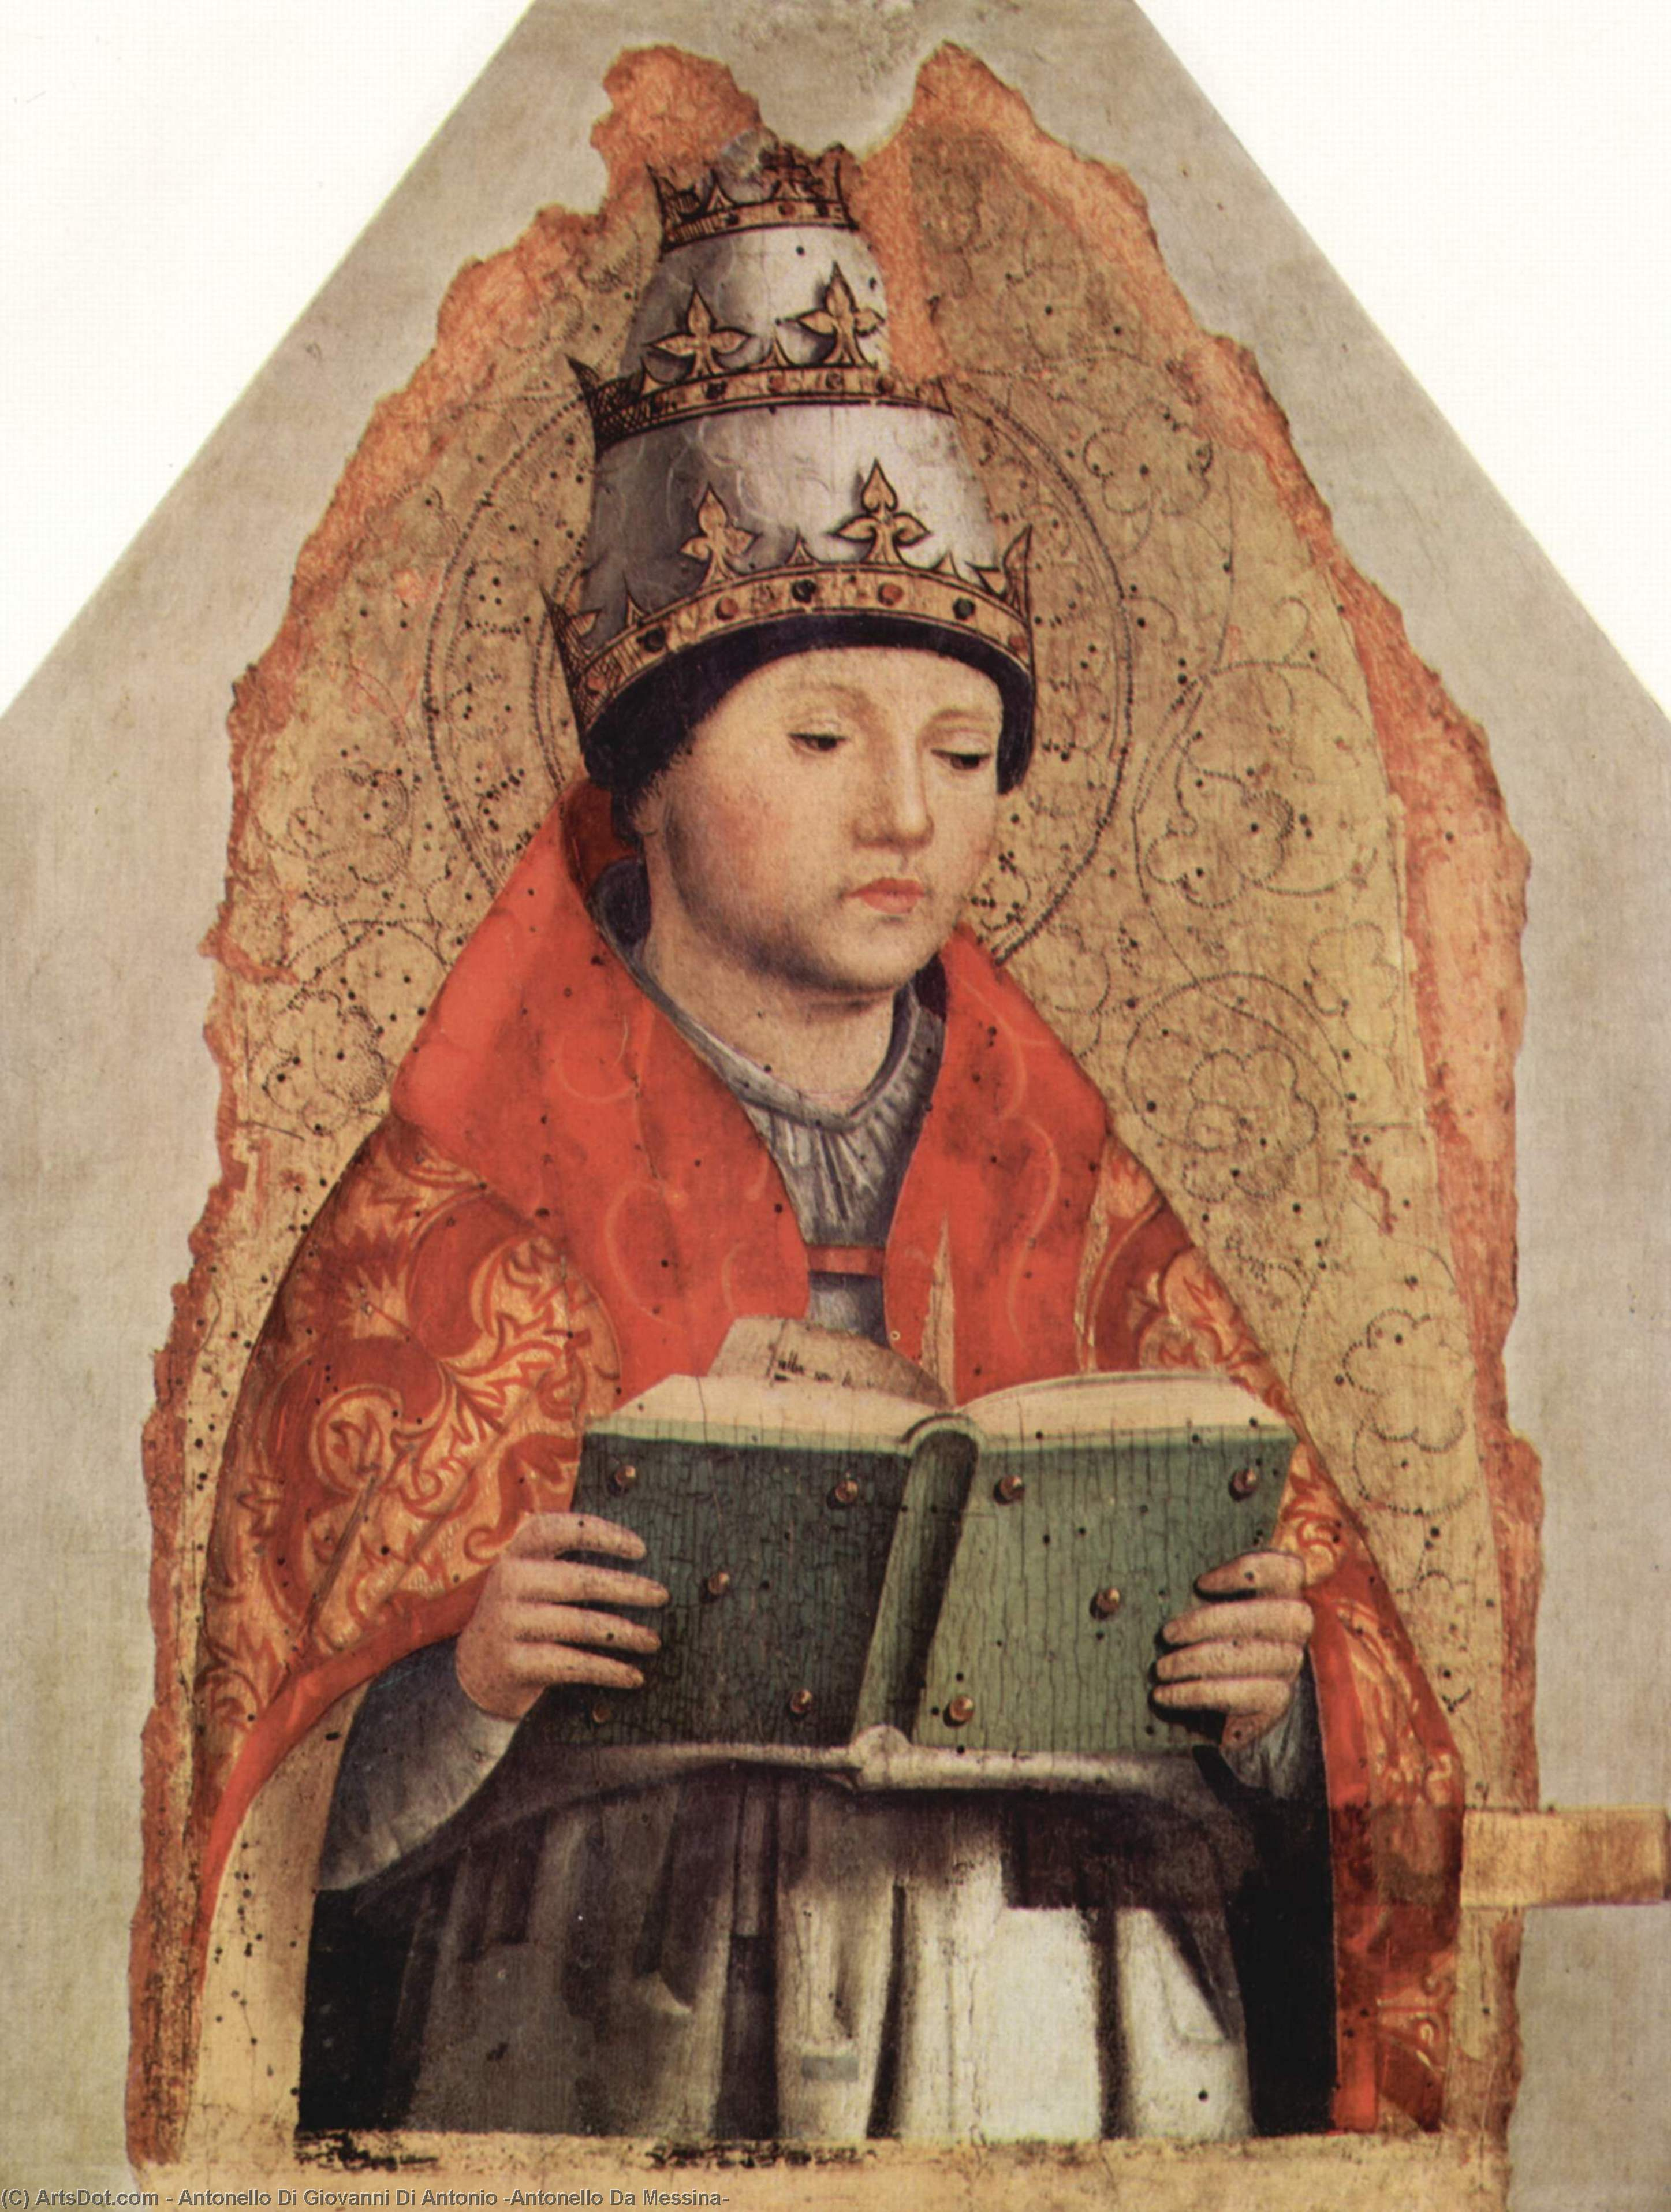 San . Gregory, temperas de Antonello Di Giovanni Di Antonio (Antonello Da Messina) (1430-1479, Italy)